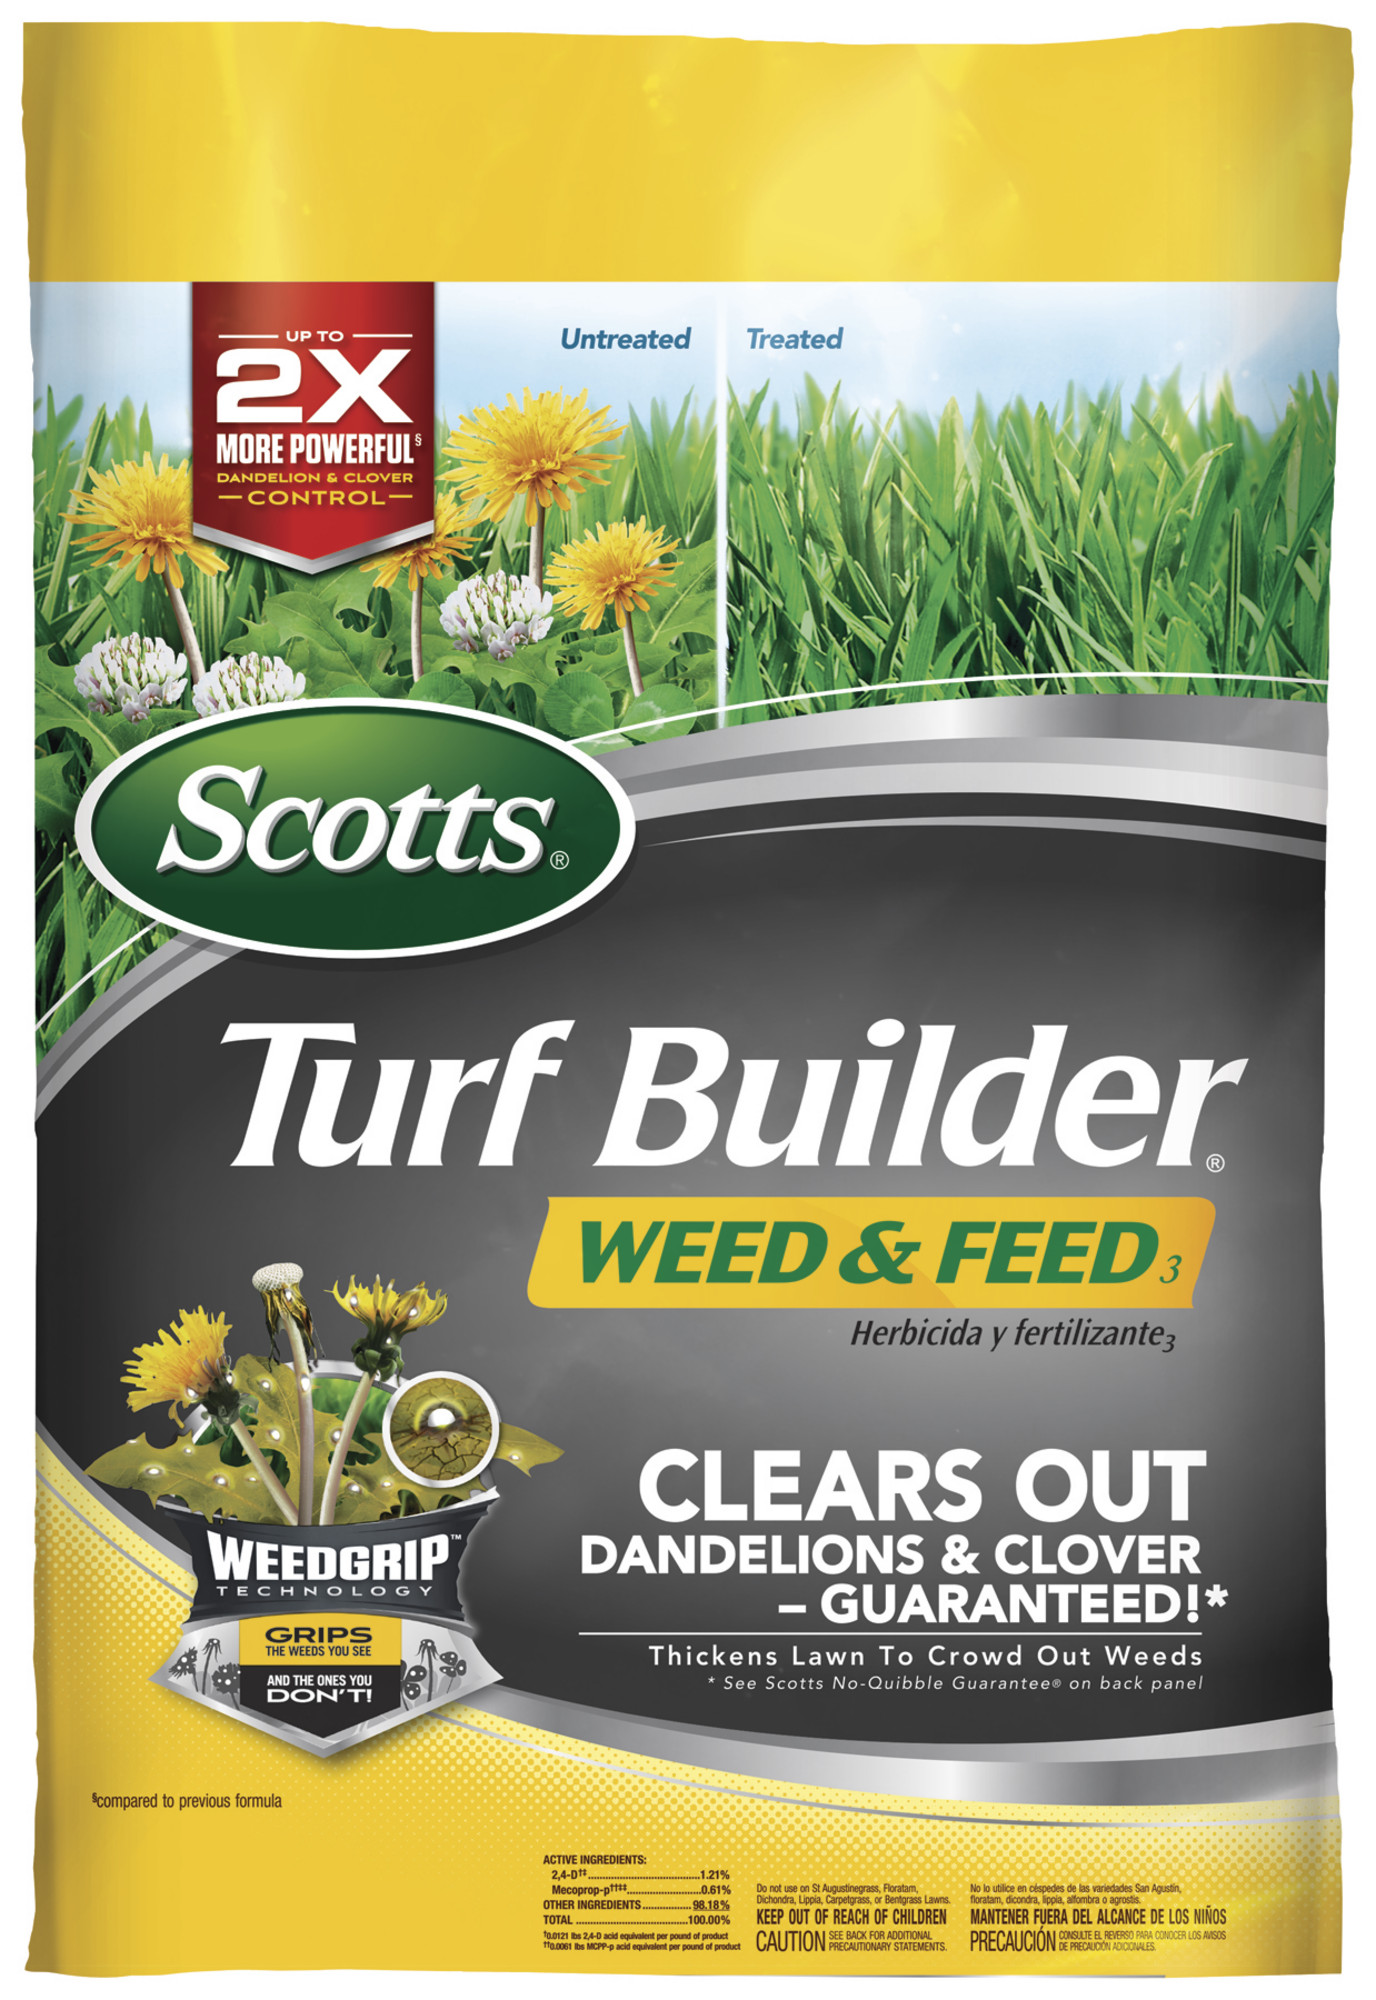 Scotts turf builder weed and feed lawn fertilizer lawn for How to find a builder